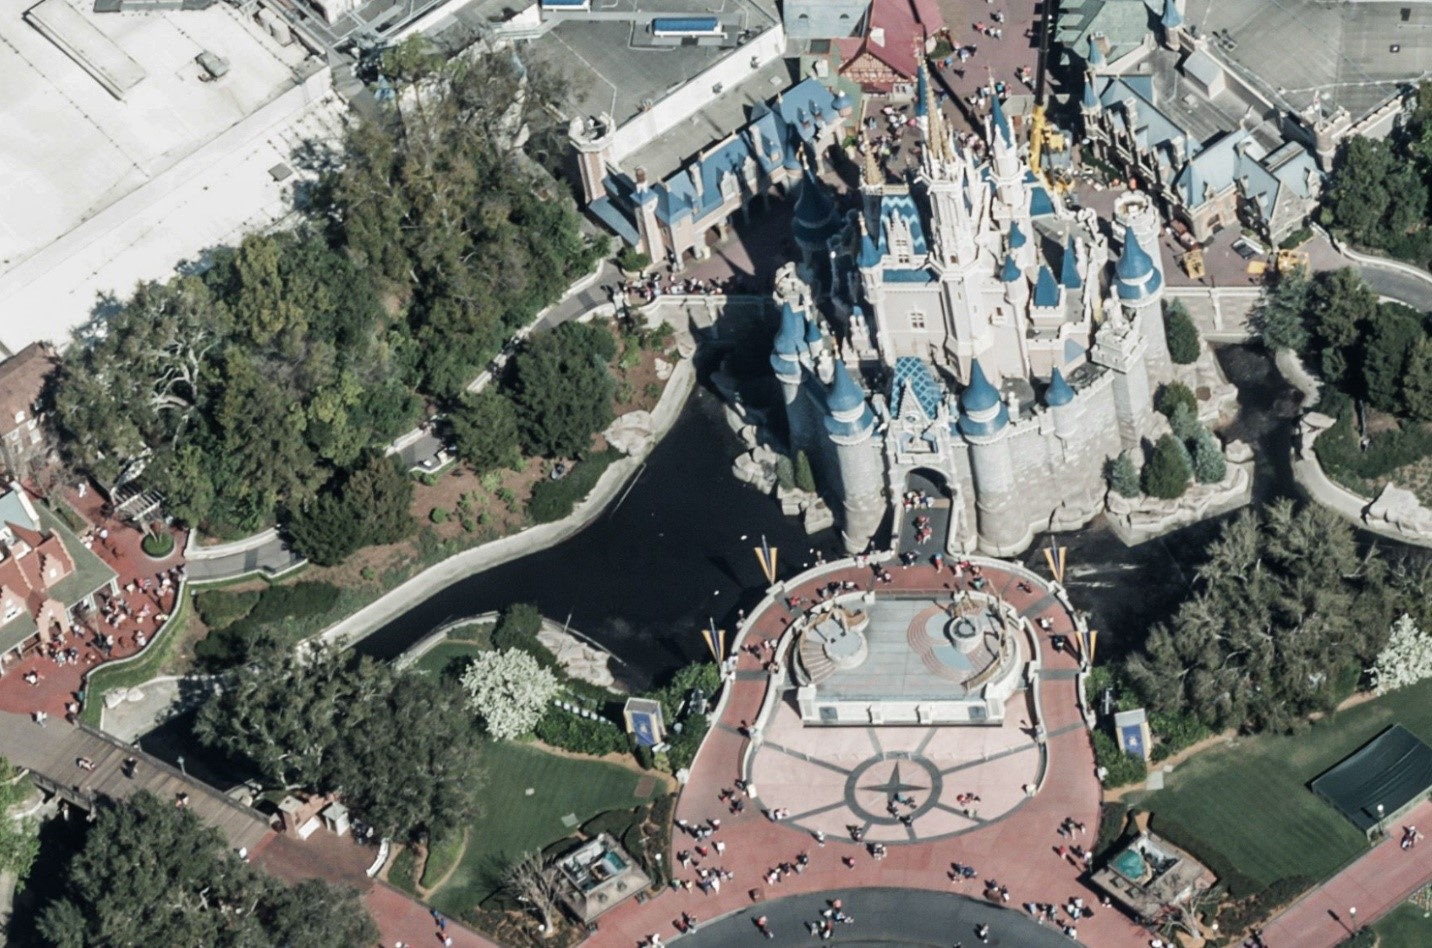 Over 450 Areas of Bird's Eye Imagery Now Live on Bing Maps ... Satellite Map Of The Magic Kingdom on magic kingdom aerial view, magic kingdom history, magic kingdom virtual tour, magic kingdom food, magic kingdom philippines, magic kingdom restaurants,